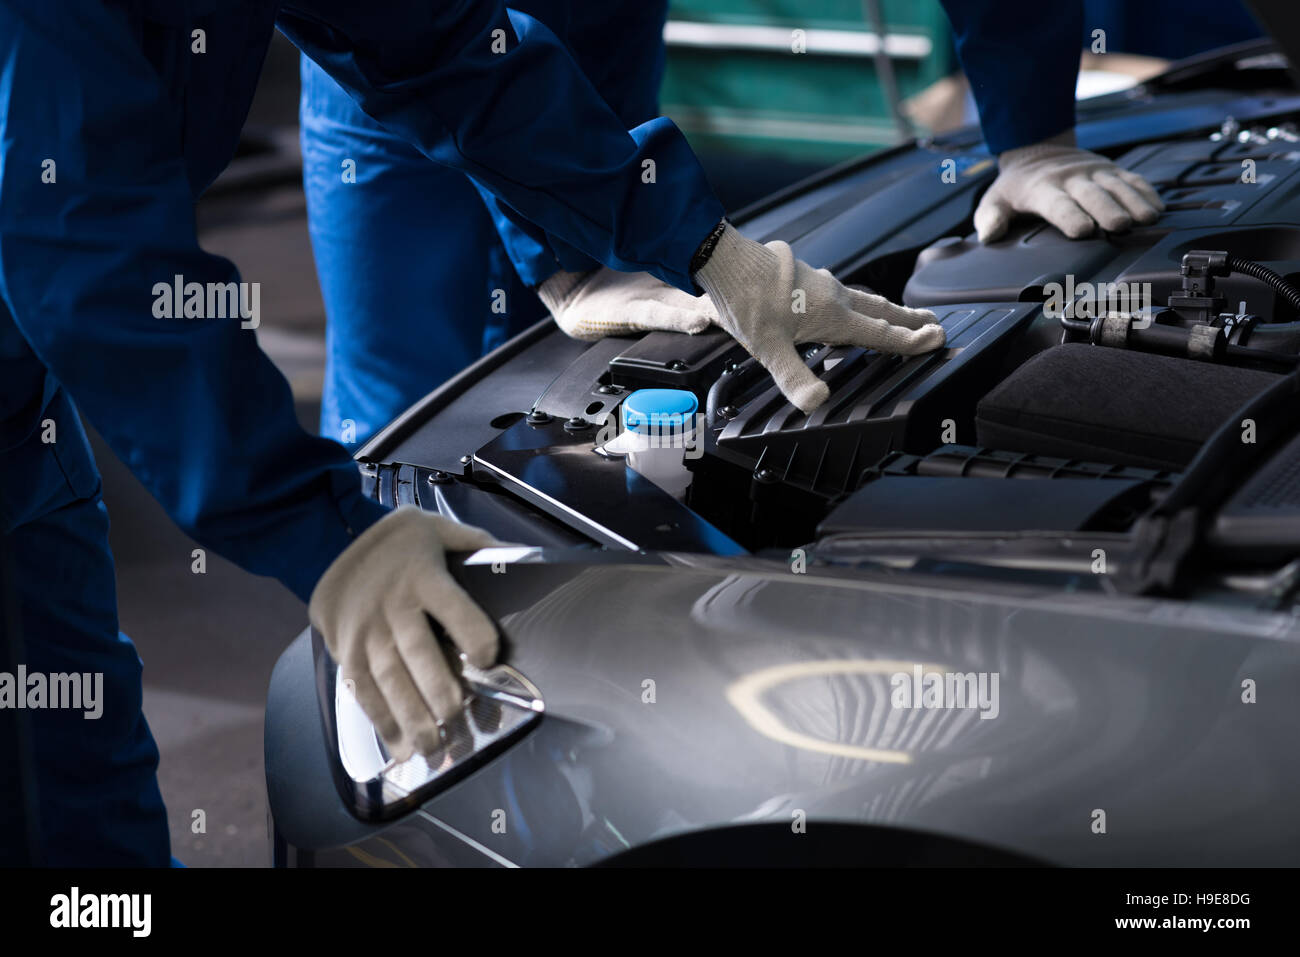 Professional mechanics chacking car engine - Stock Image